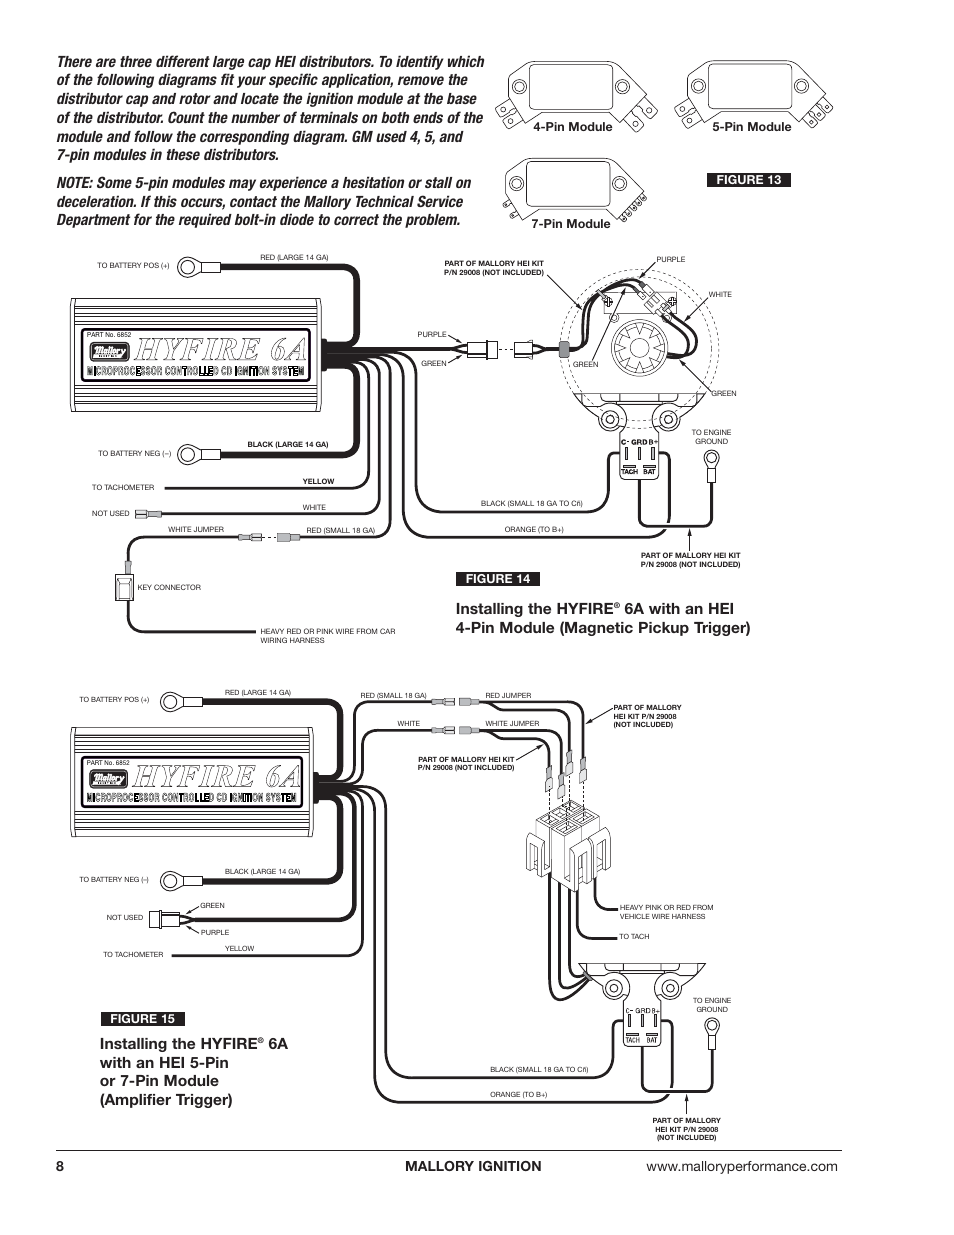 mallory hyfire wiring diagram hhy yf fiir re e 6 6a a | mallory ignition mallory hyfire ...